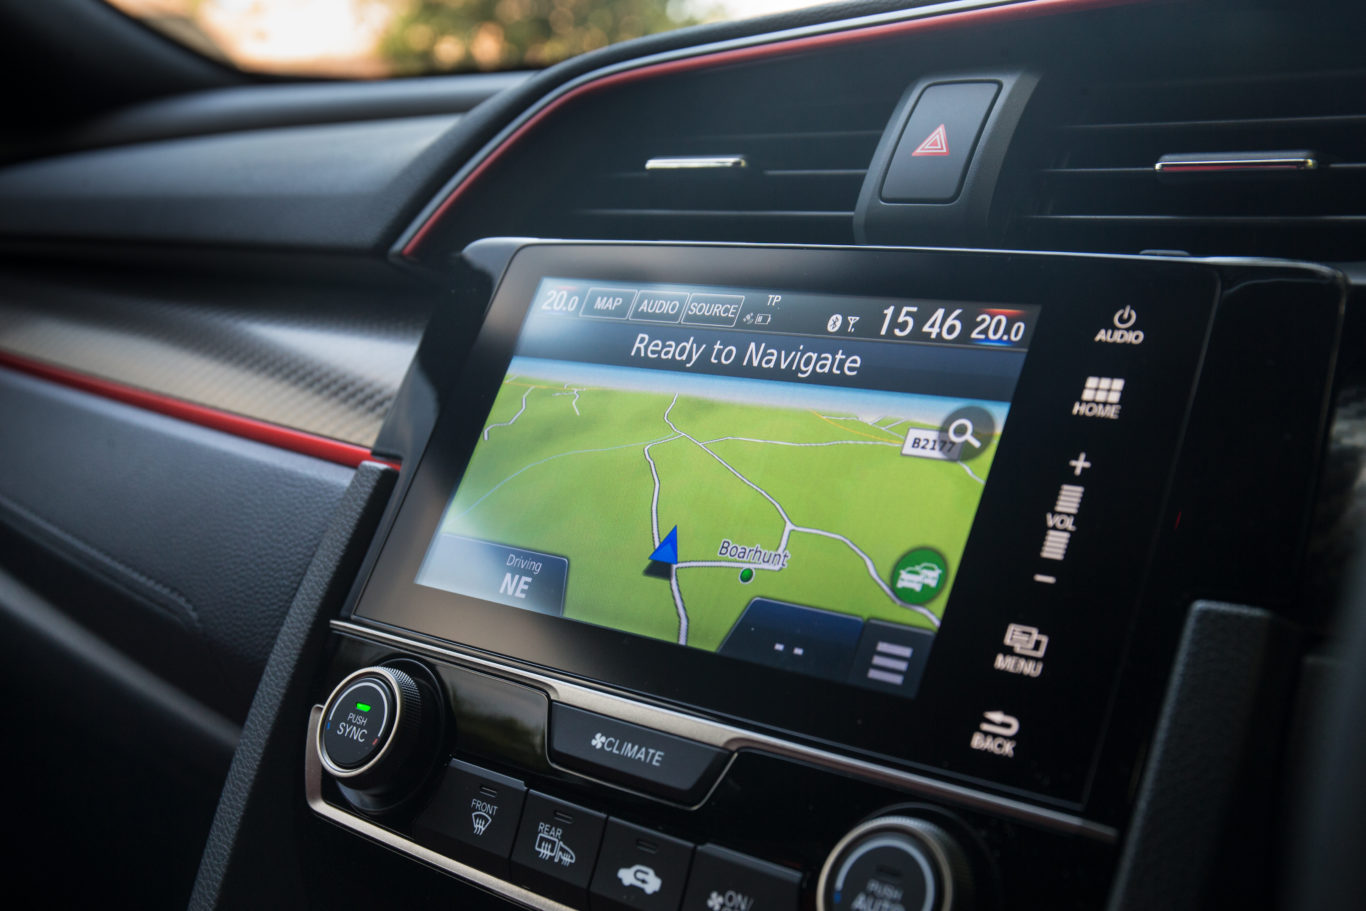 The Honda's infotainment system lacks the ease-of-use that we expect